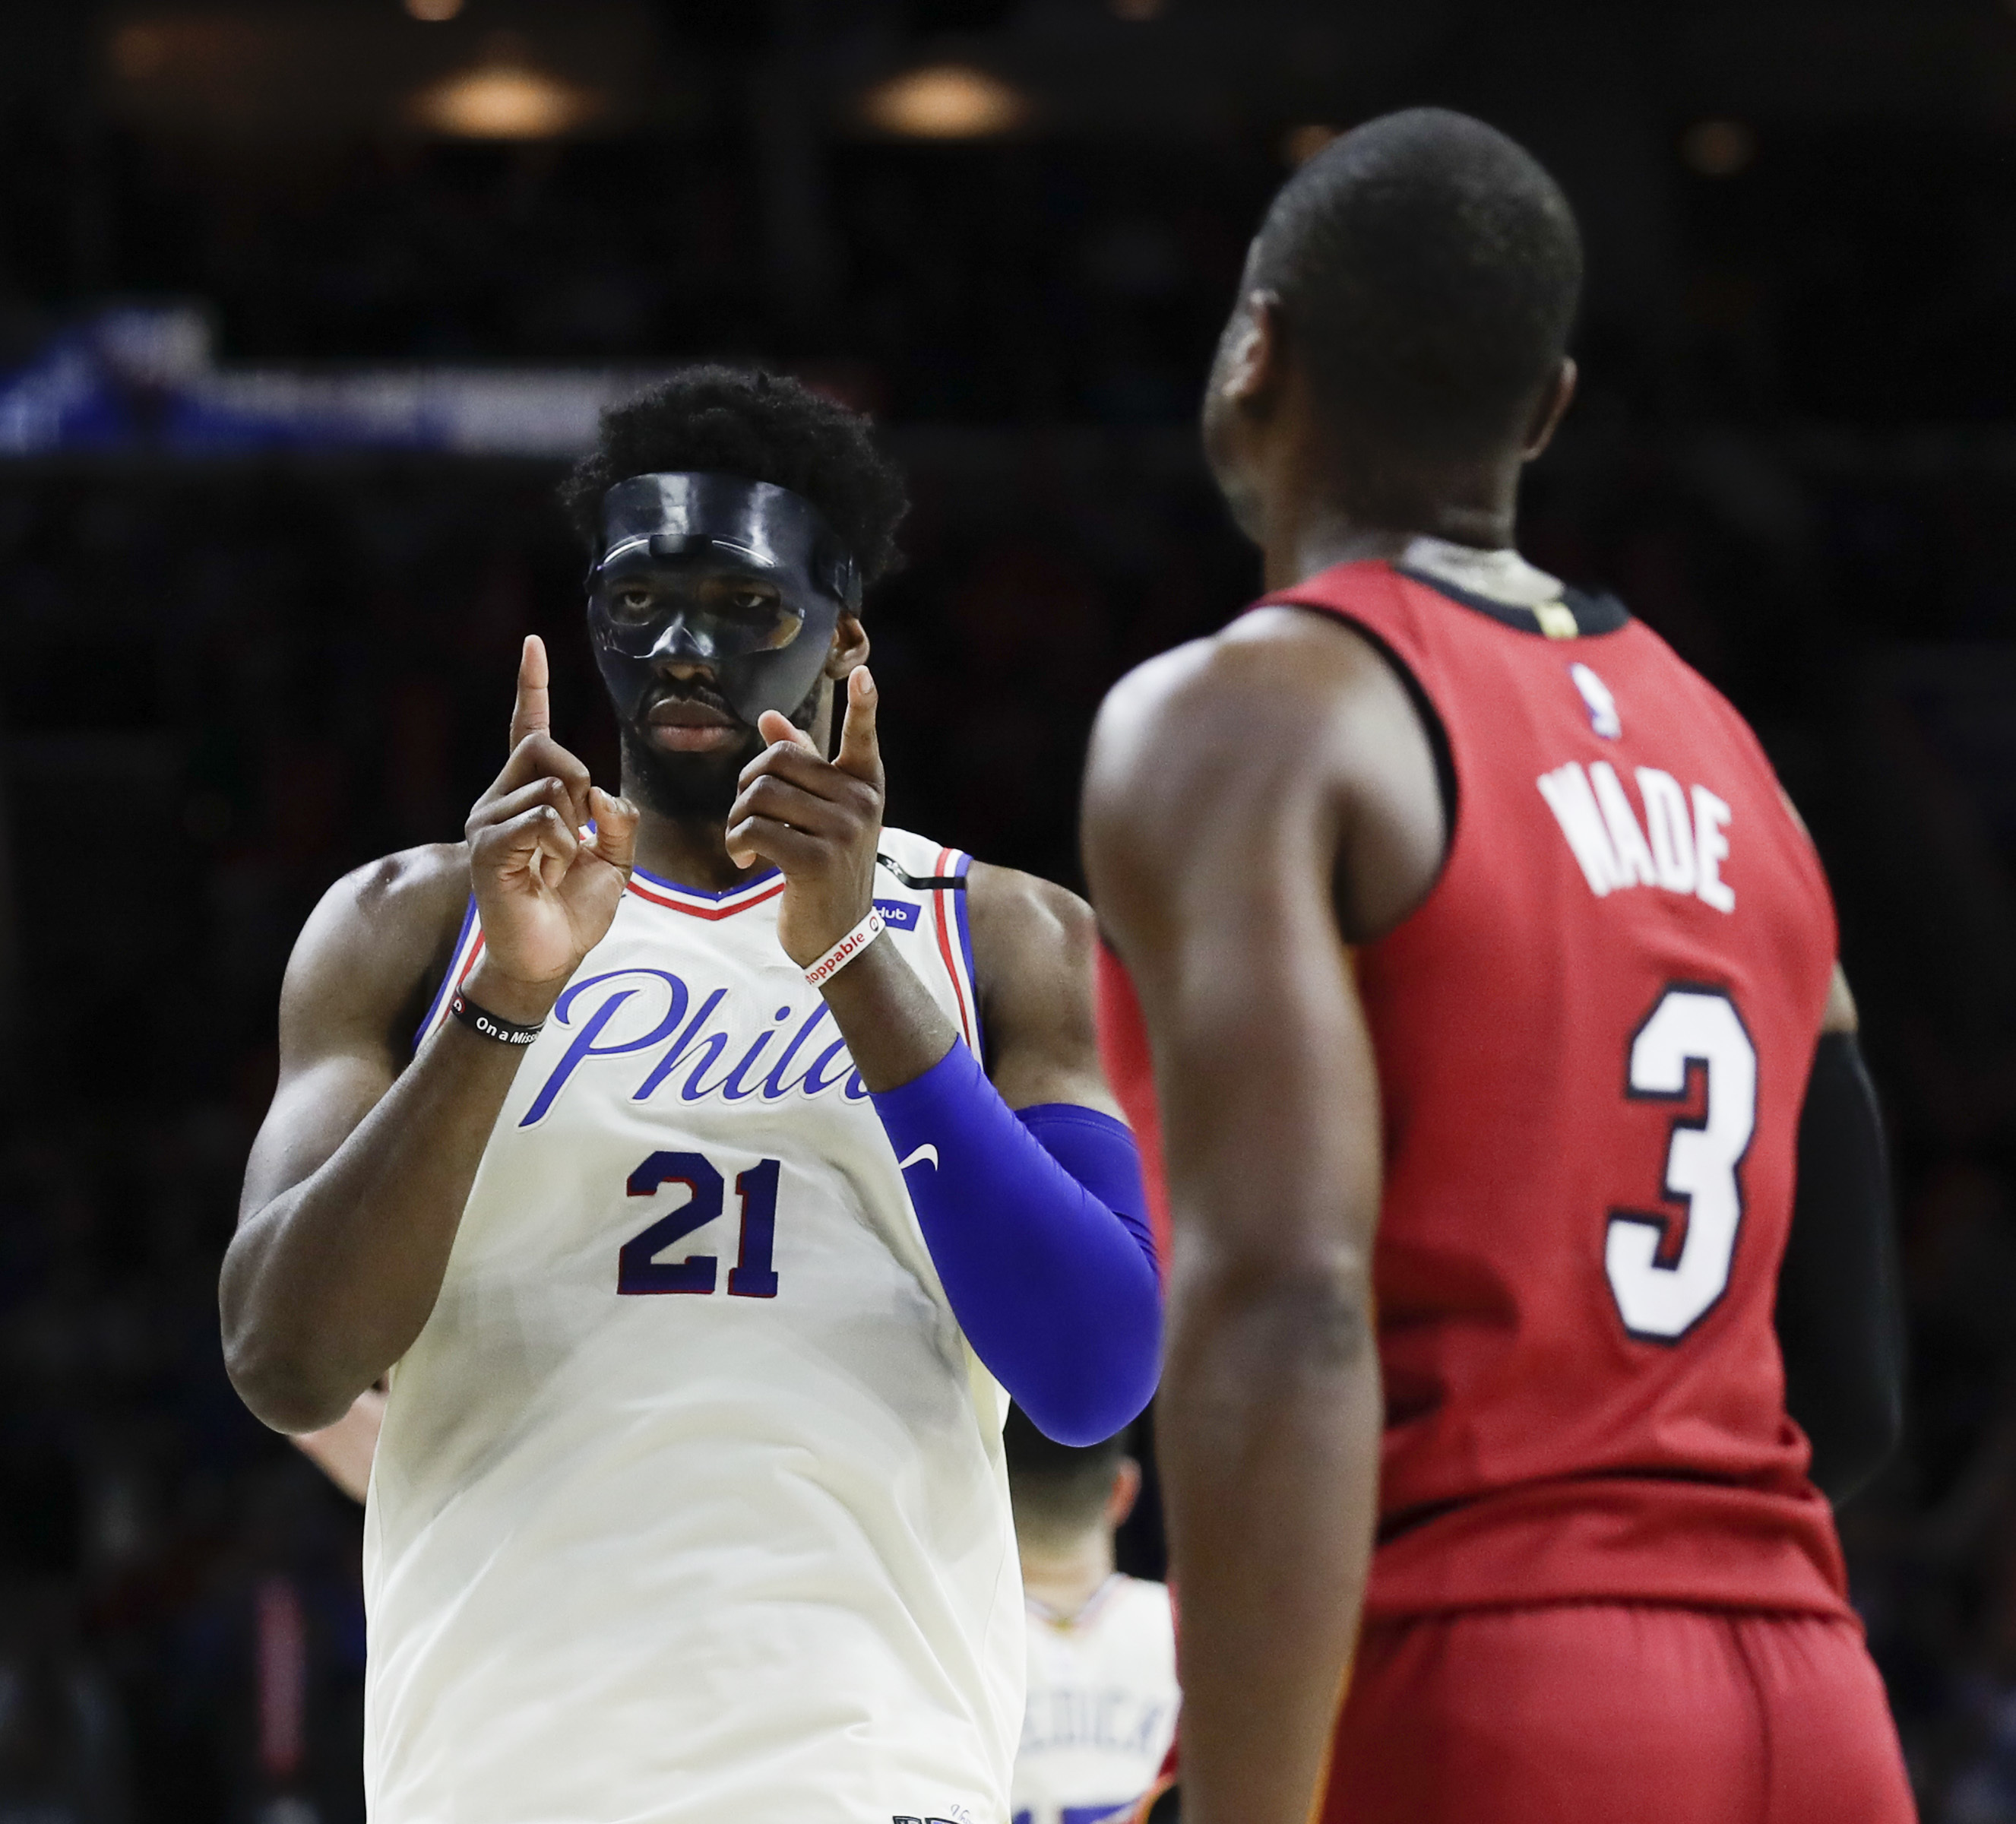 Sixers center Joel Embiid celebrates as the Sixers close out the Heat on Tuesday as Dwyane Wade, right, watches.